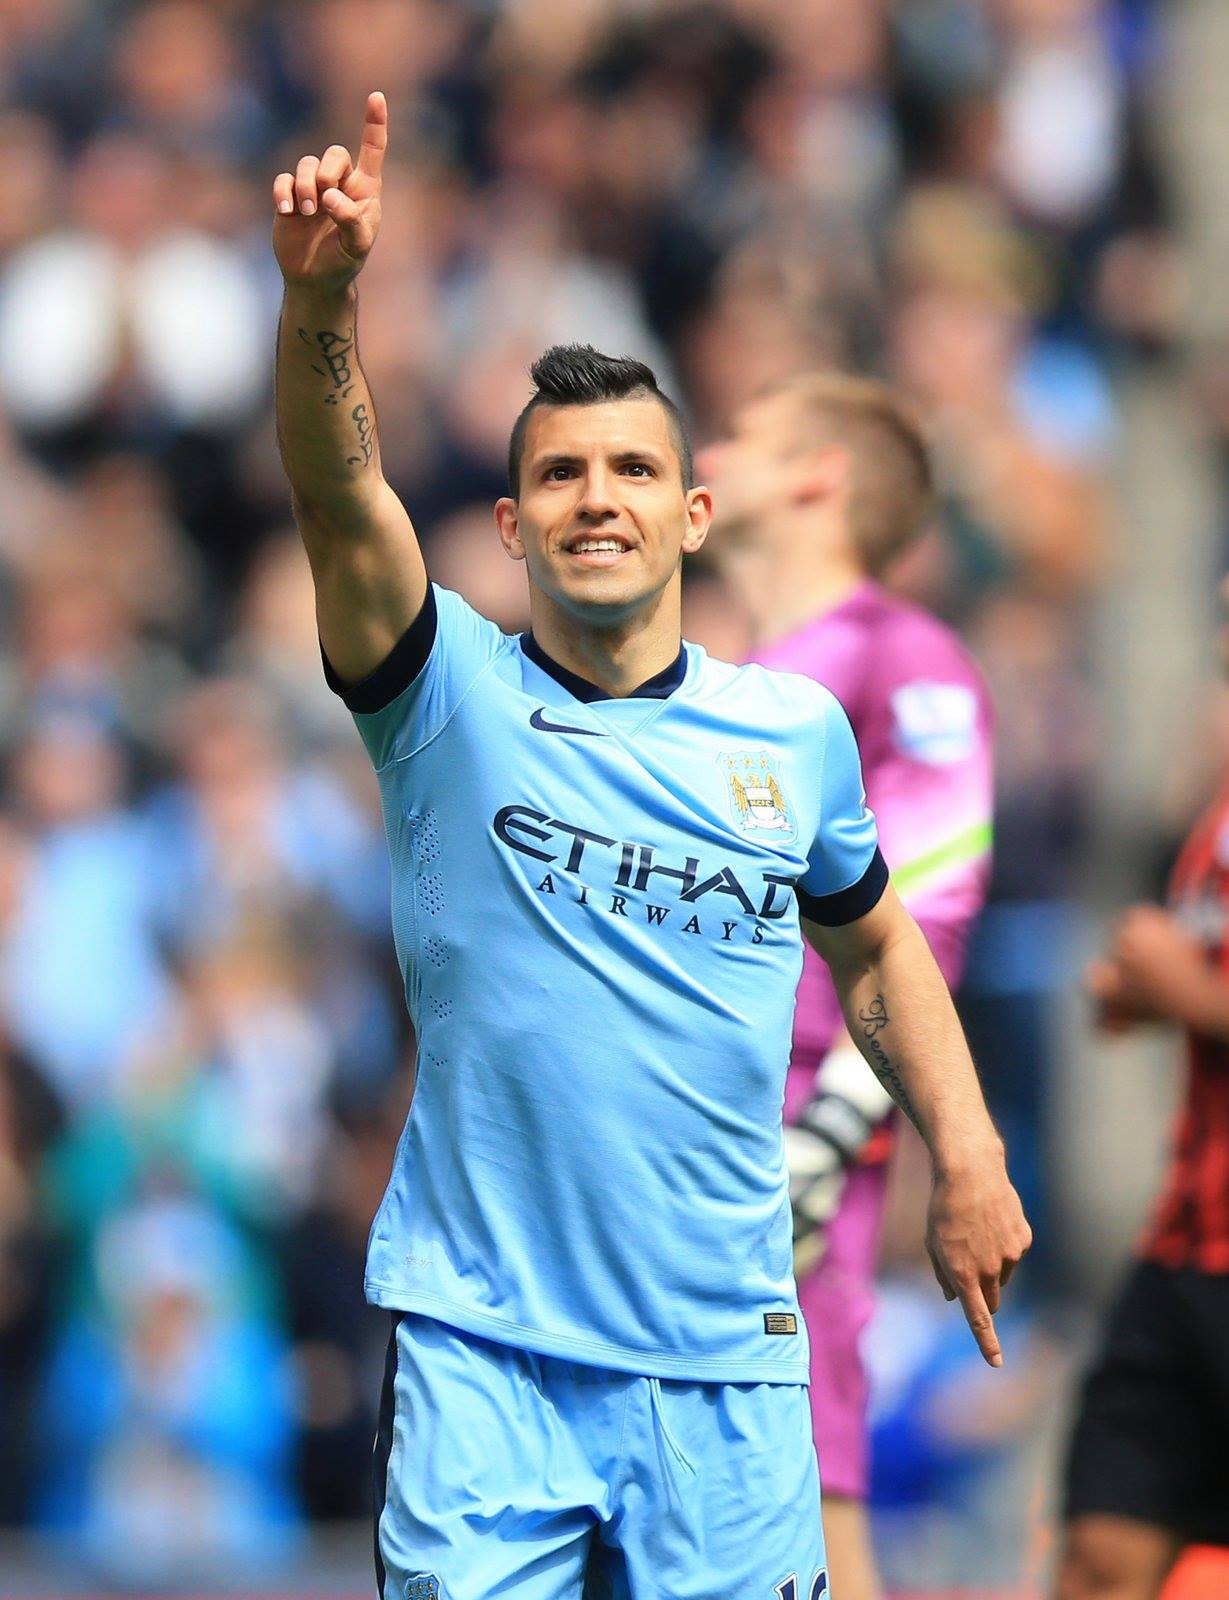 Golden Boy with the Golden Boot - Sergio has the Midas Touch with 8 goals in his last 5 games. Courtesy@MCFC